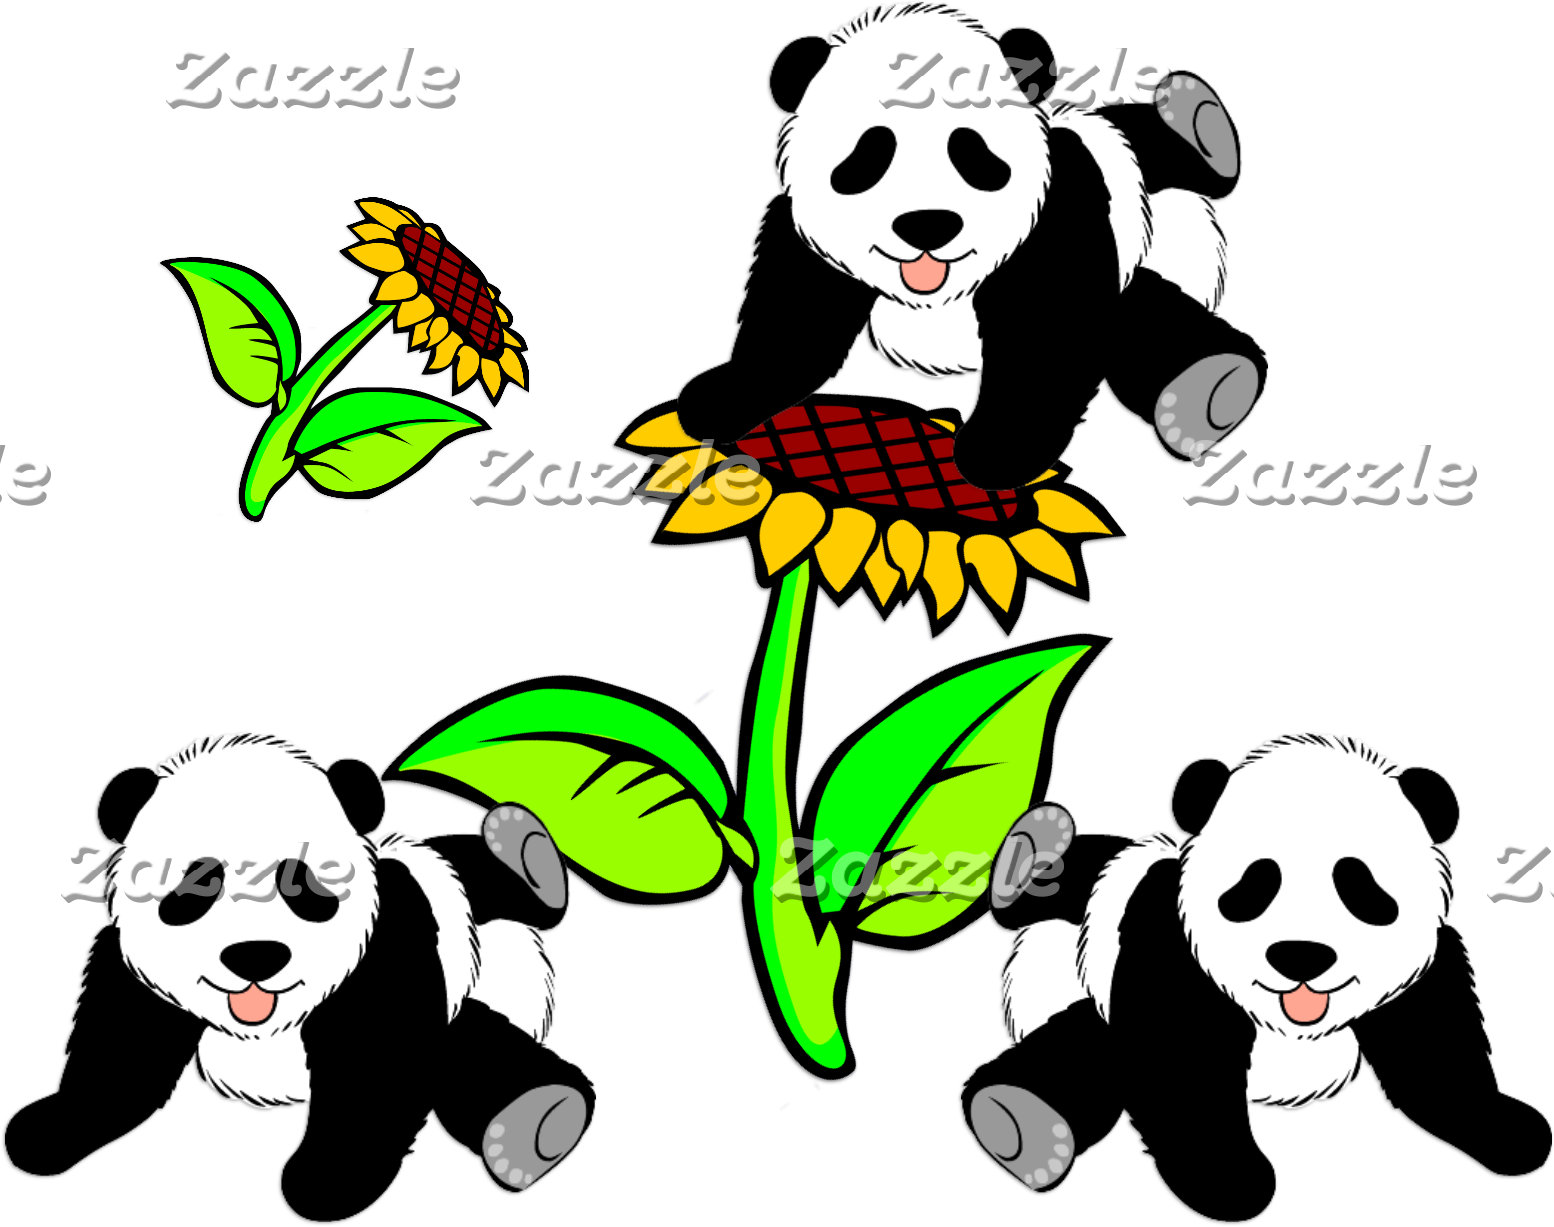 Adorable Sunflower Panda Bears